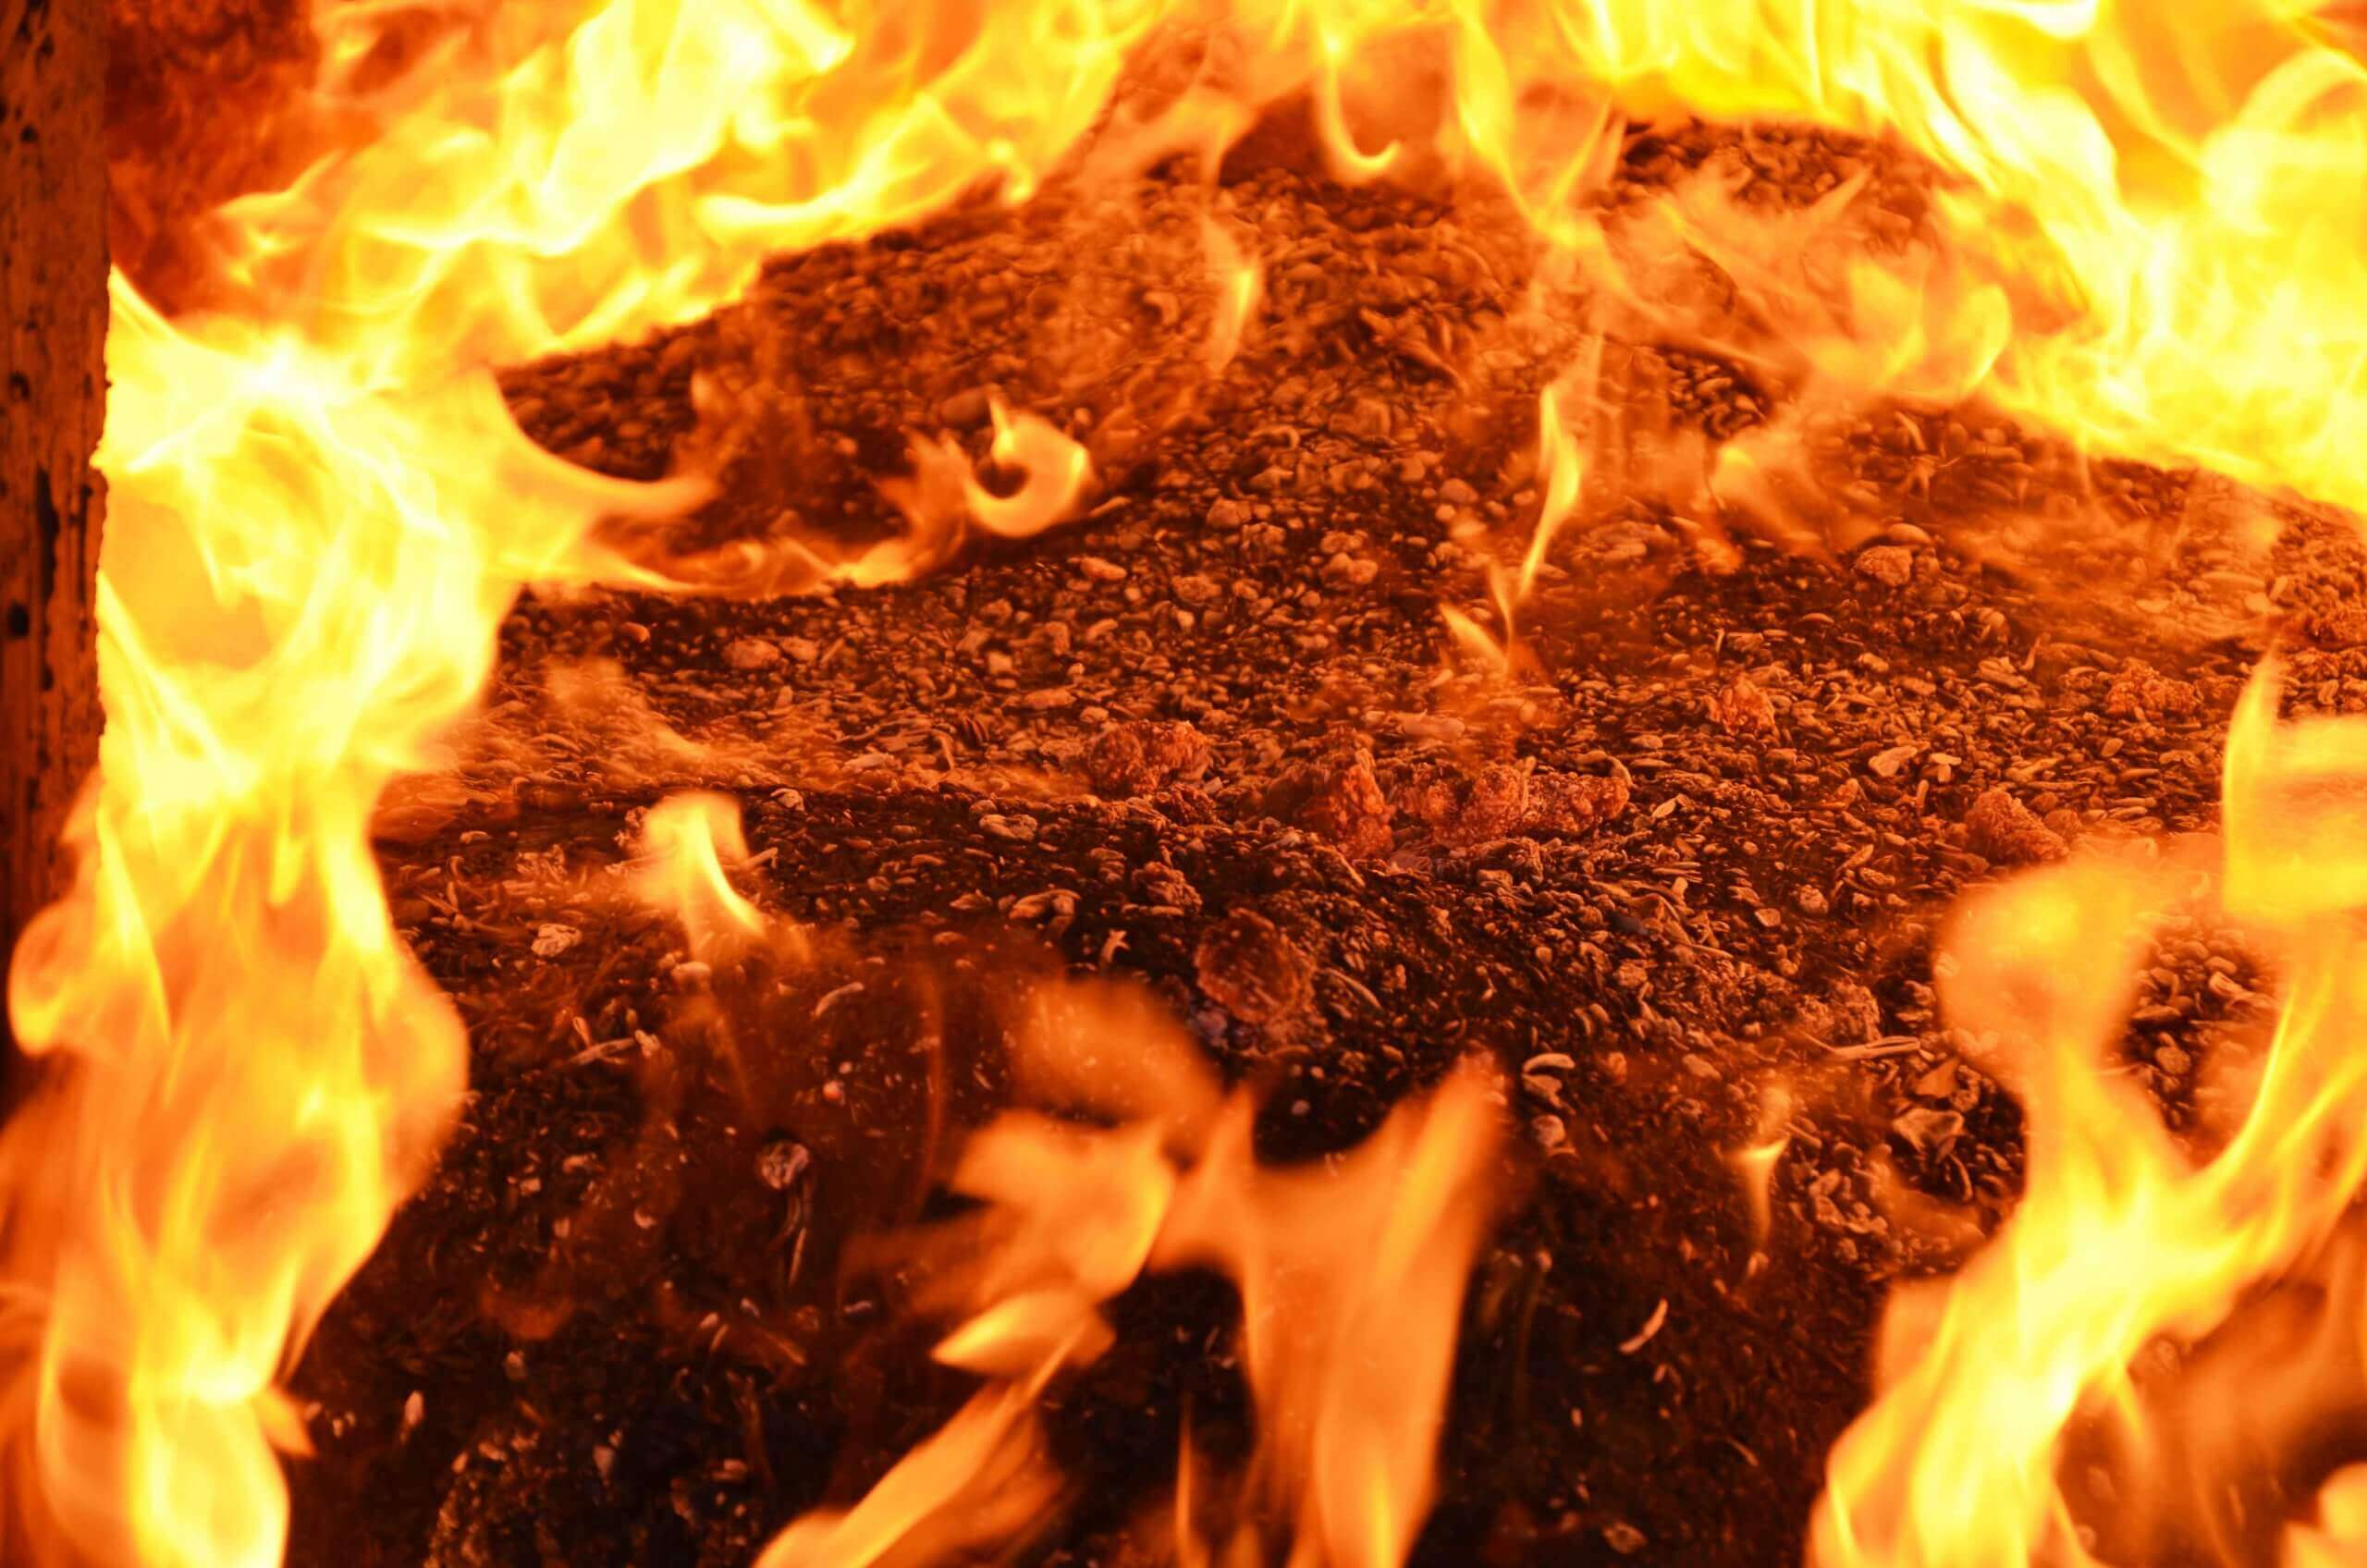 Burning of wood briquettes in the wood burning oven